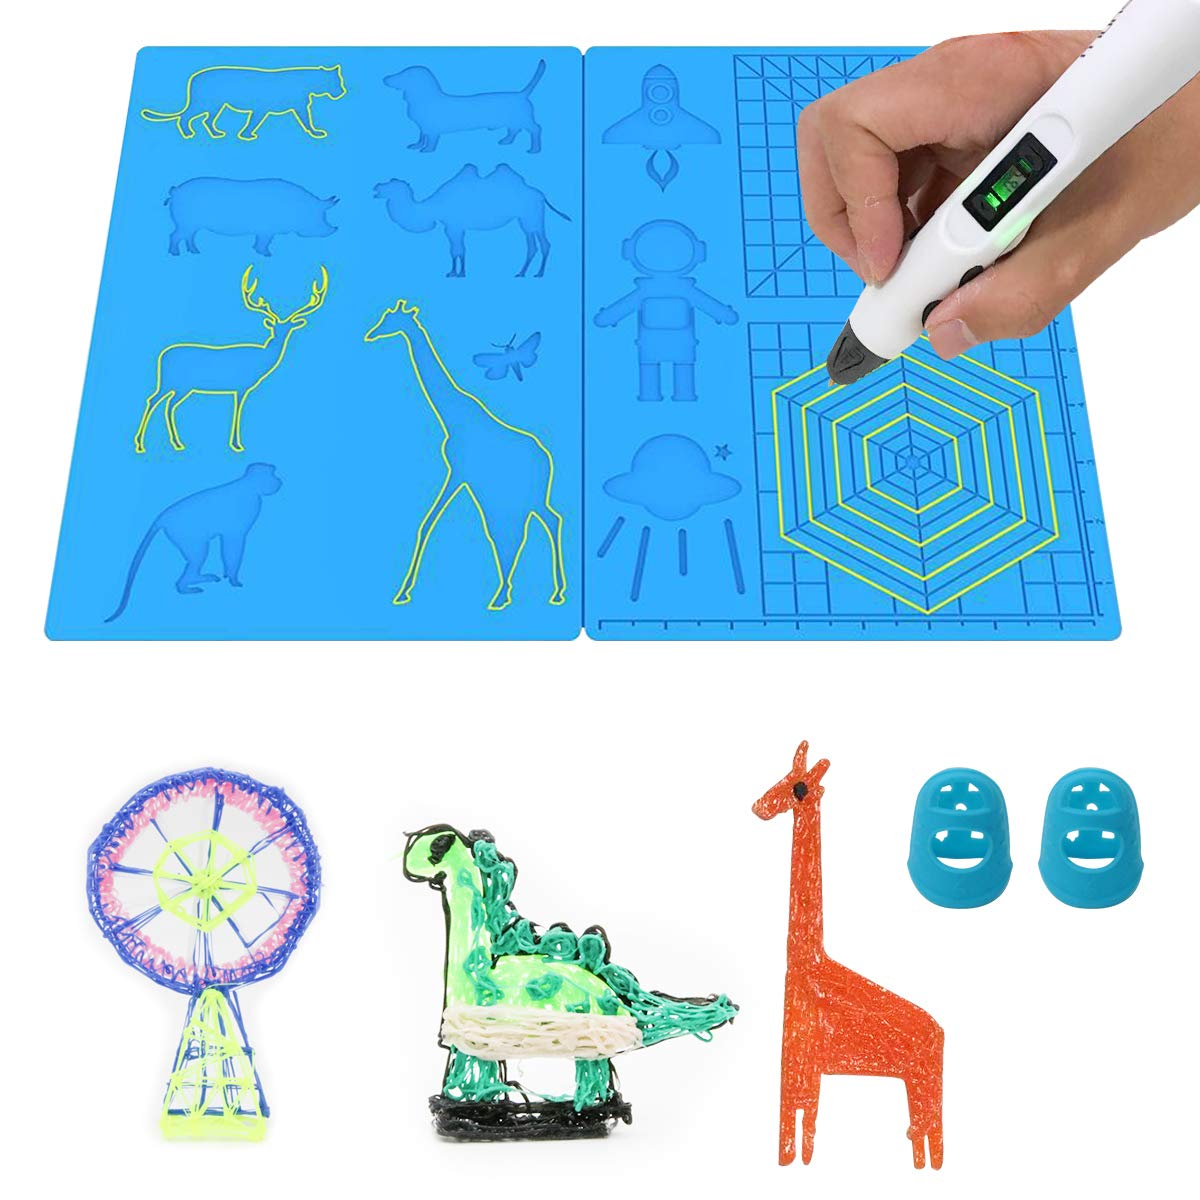 3D Pen Mat Large Colorado Springs Mall Multi-Shaped Silicone Basic Printing NEW before selling Te